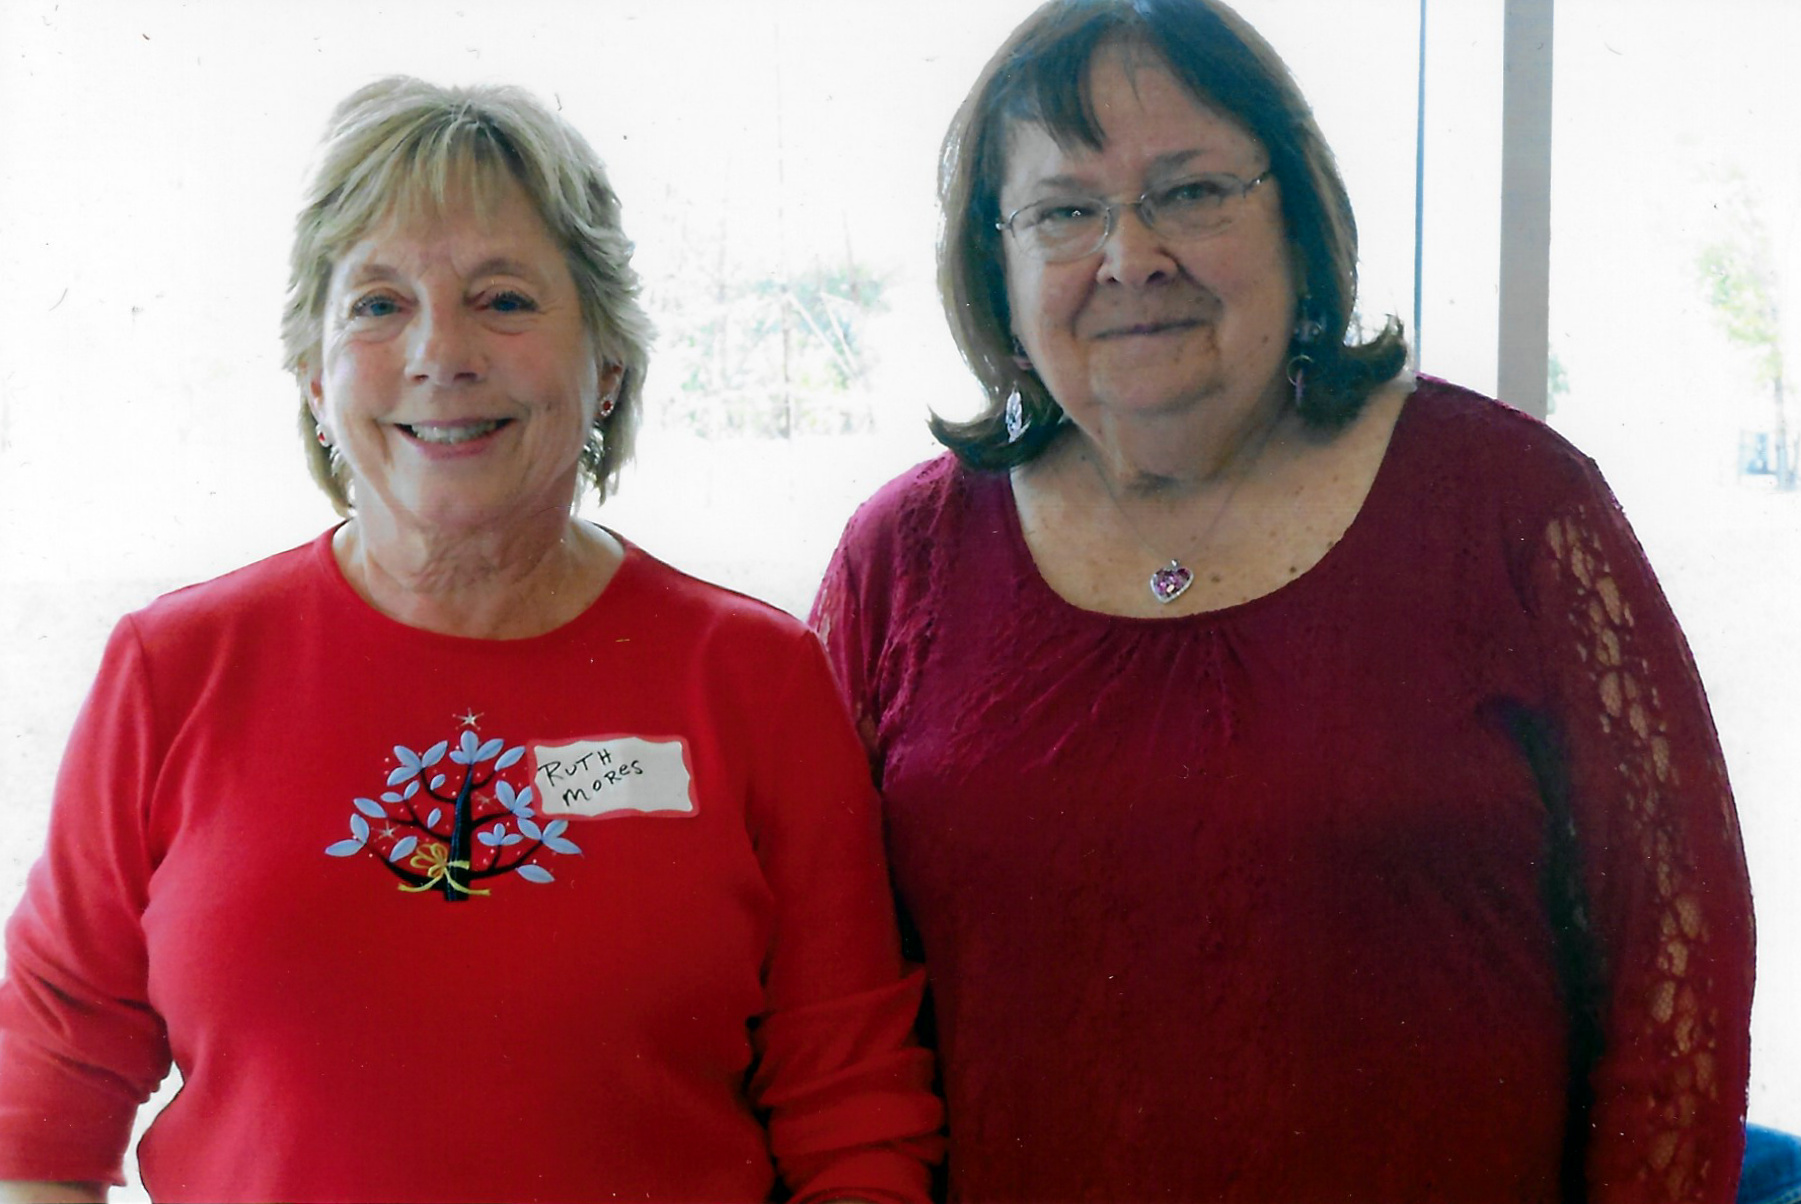 Ruth Mores (left) of the Hammond Historical Society was the guest speaker at the October 2018 meeting of the Whiting-Robertsdale Historical Society. With her in this photo is Priscilla McCarty-Reed, president of the Whiting-Robertsdale Historical Society.